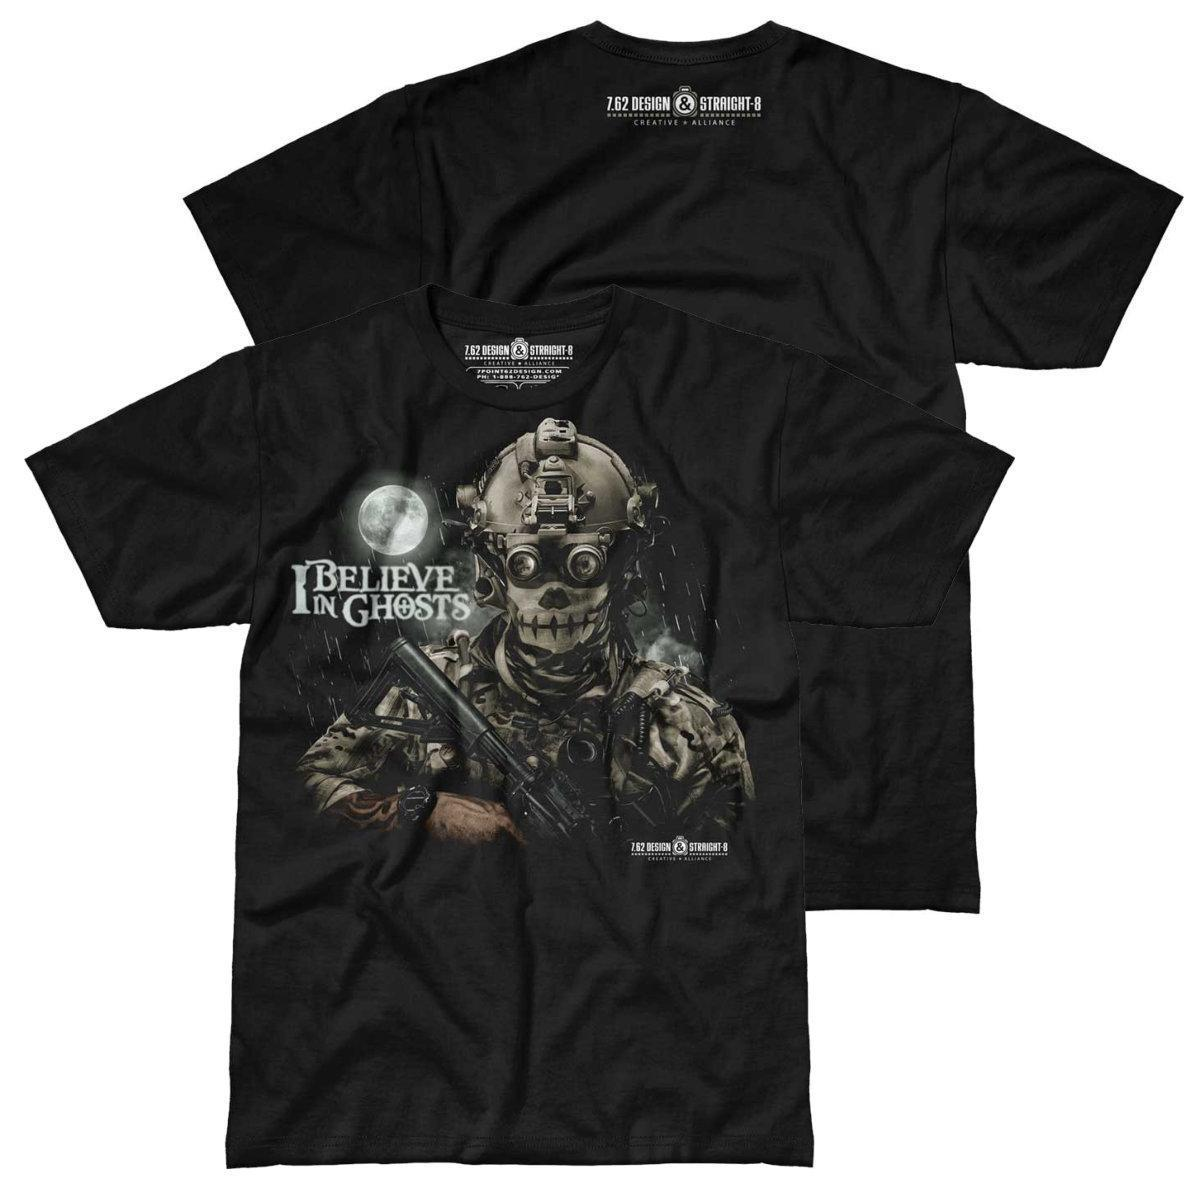 2019 Fashion Summer Style I Believe In Ghosts Military Men's T-Shirt, Black Tee Shirt